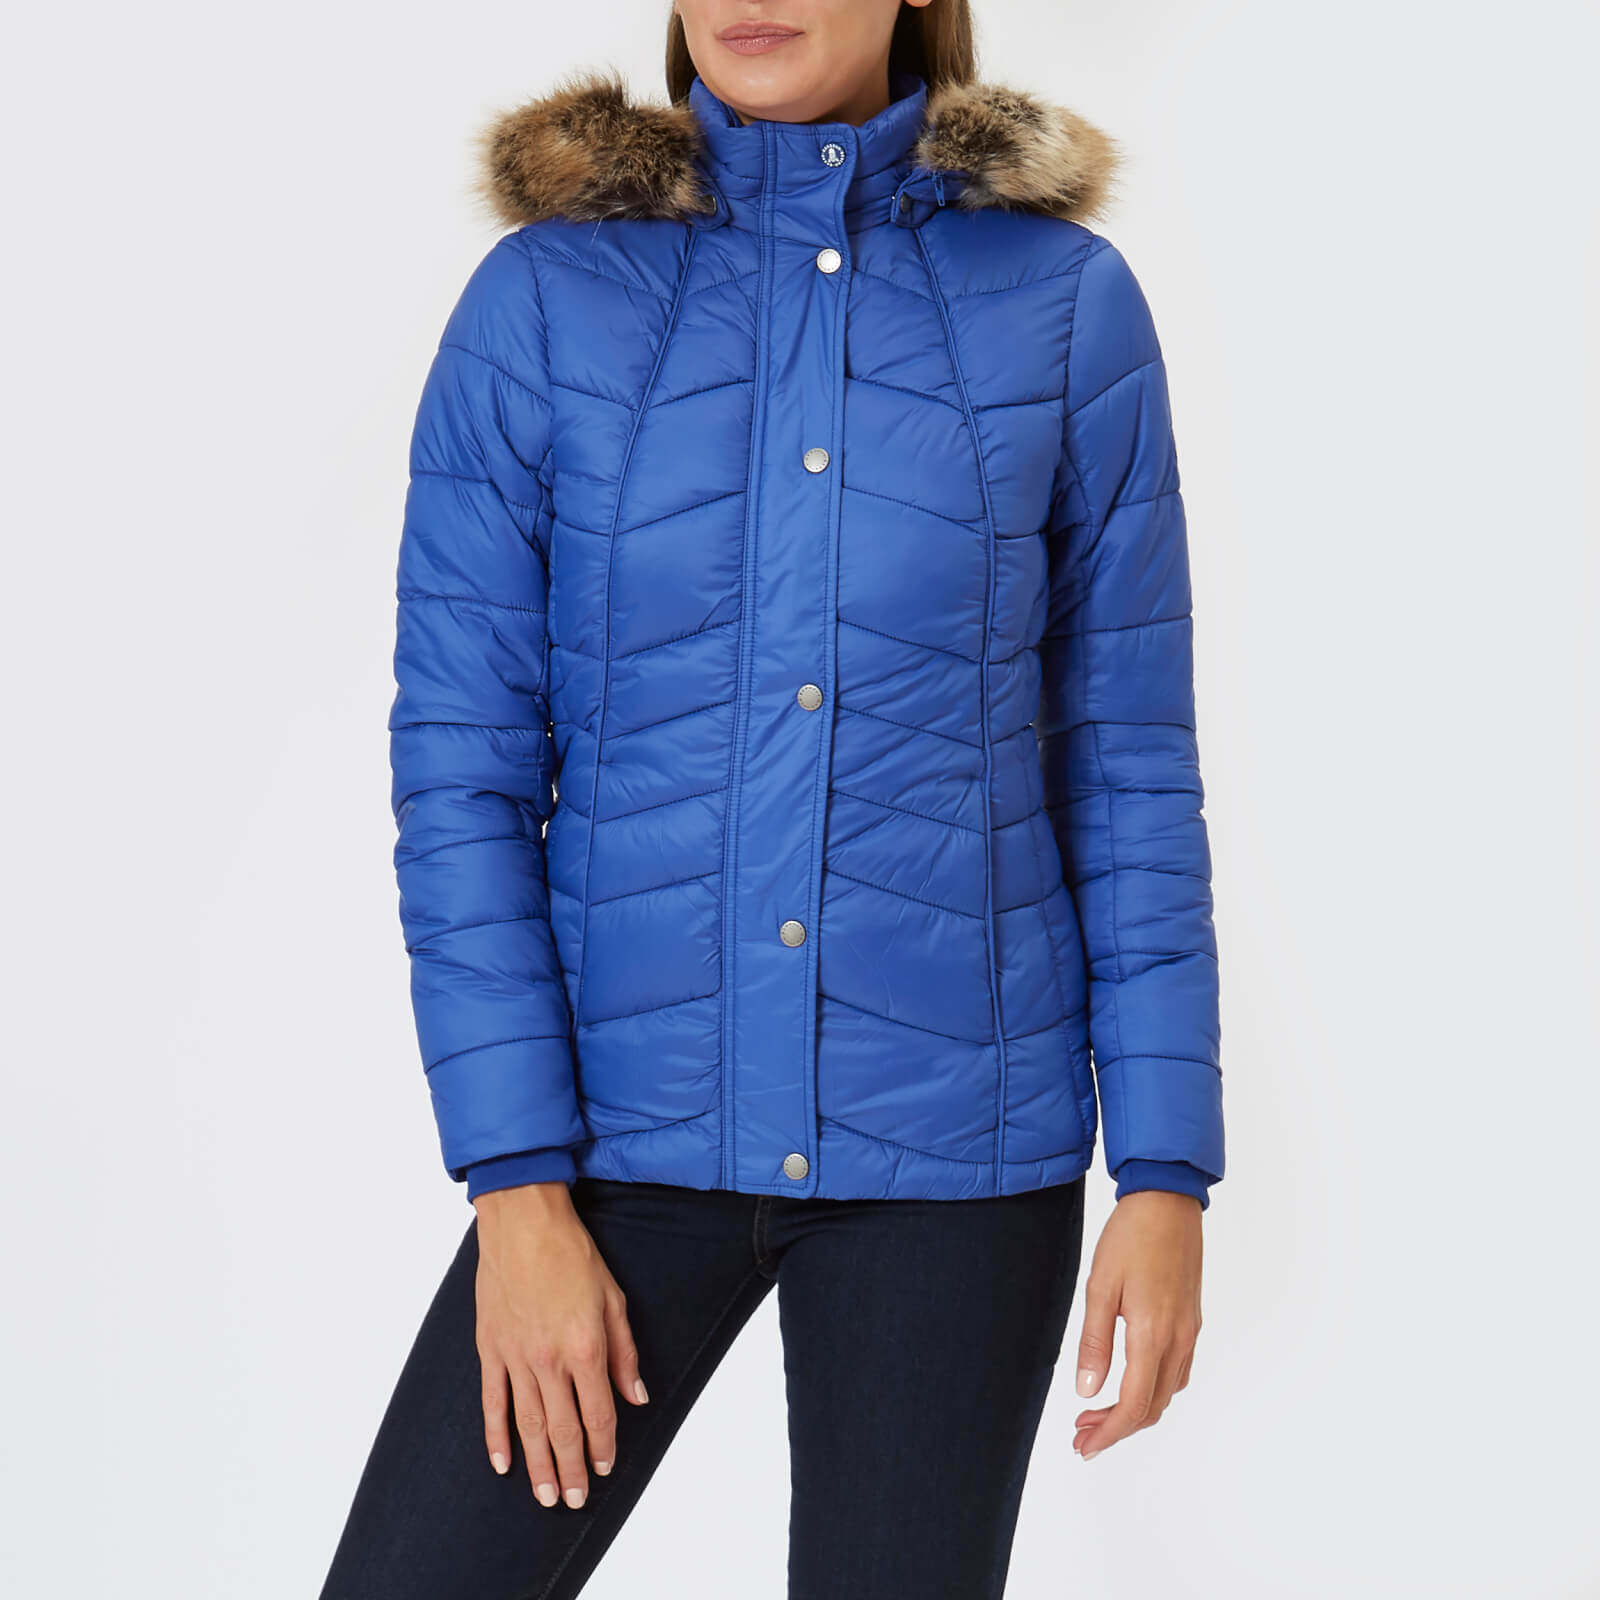 512b72798a15 Barbour Women s Bernera Quilt Jacket - Seablue Navy Womens Clothing ...